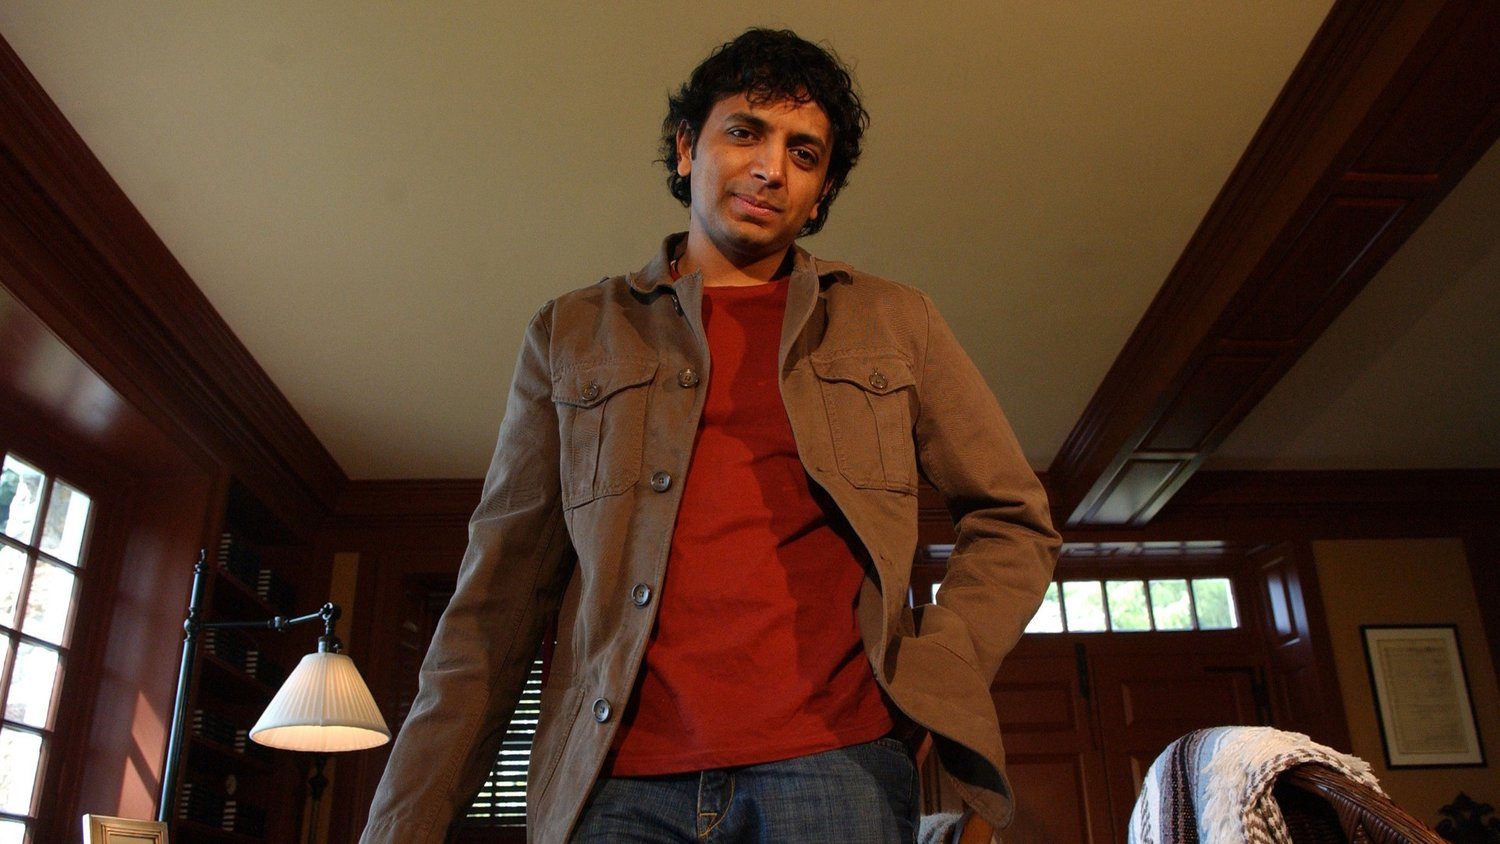 Director M. Night Shyamalan Hilariously Takes Credit for the Oscars's Twist Ending